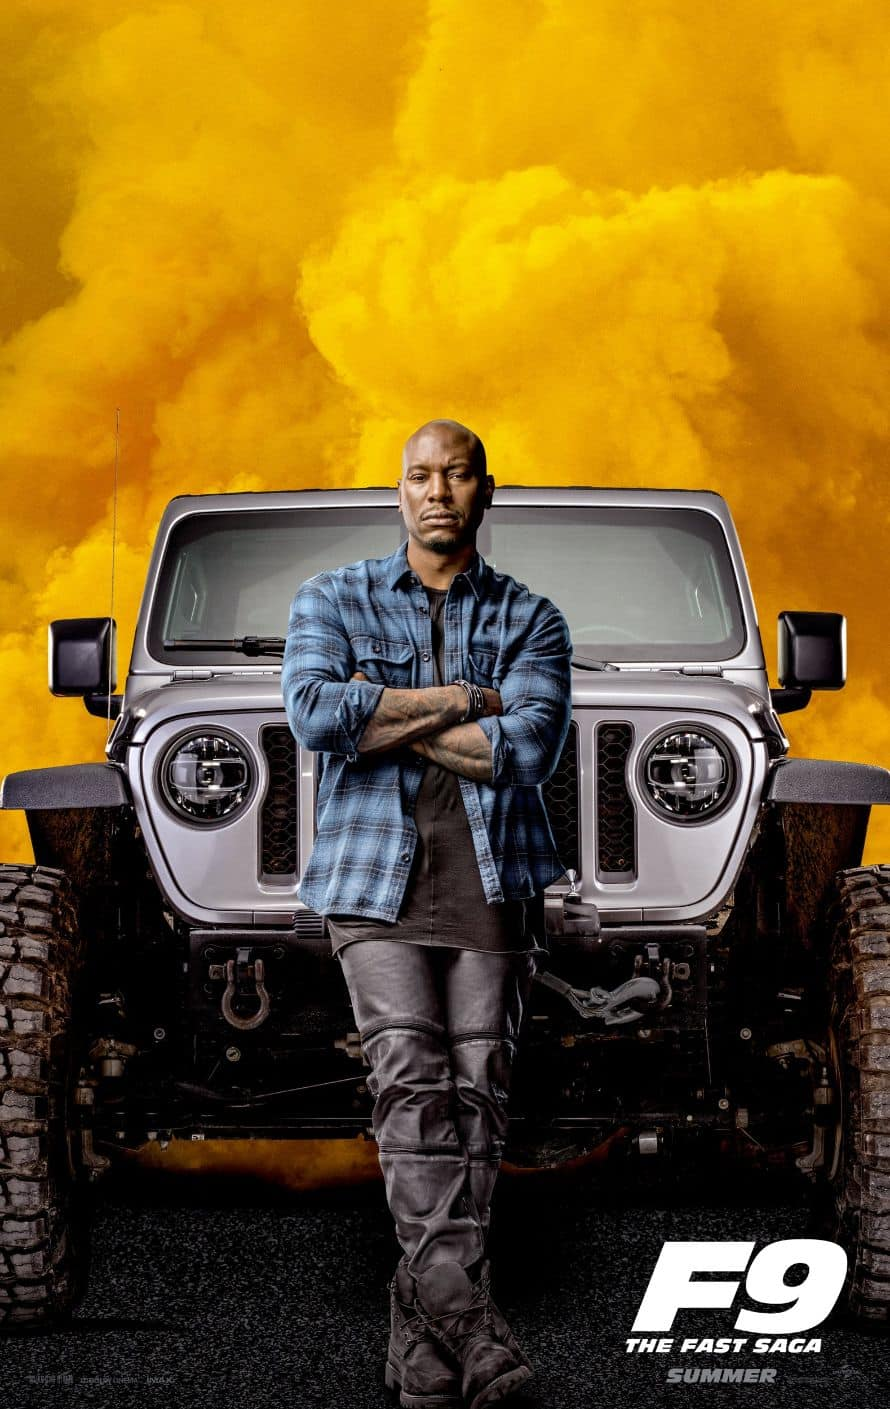 Fast and Furious Vin Diesel Tyrese Gibson